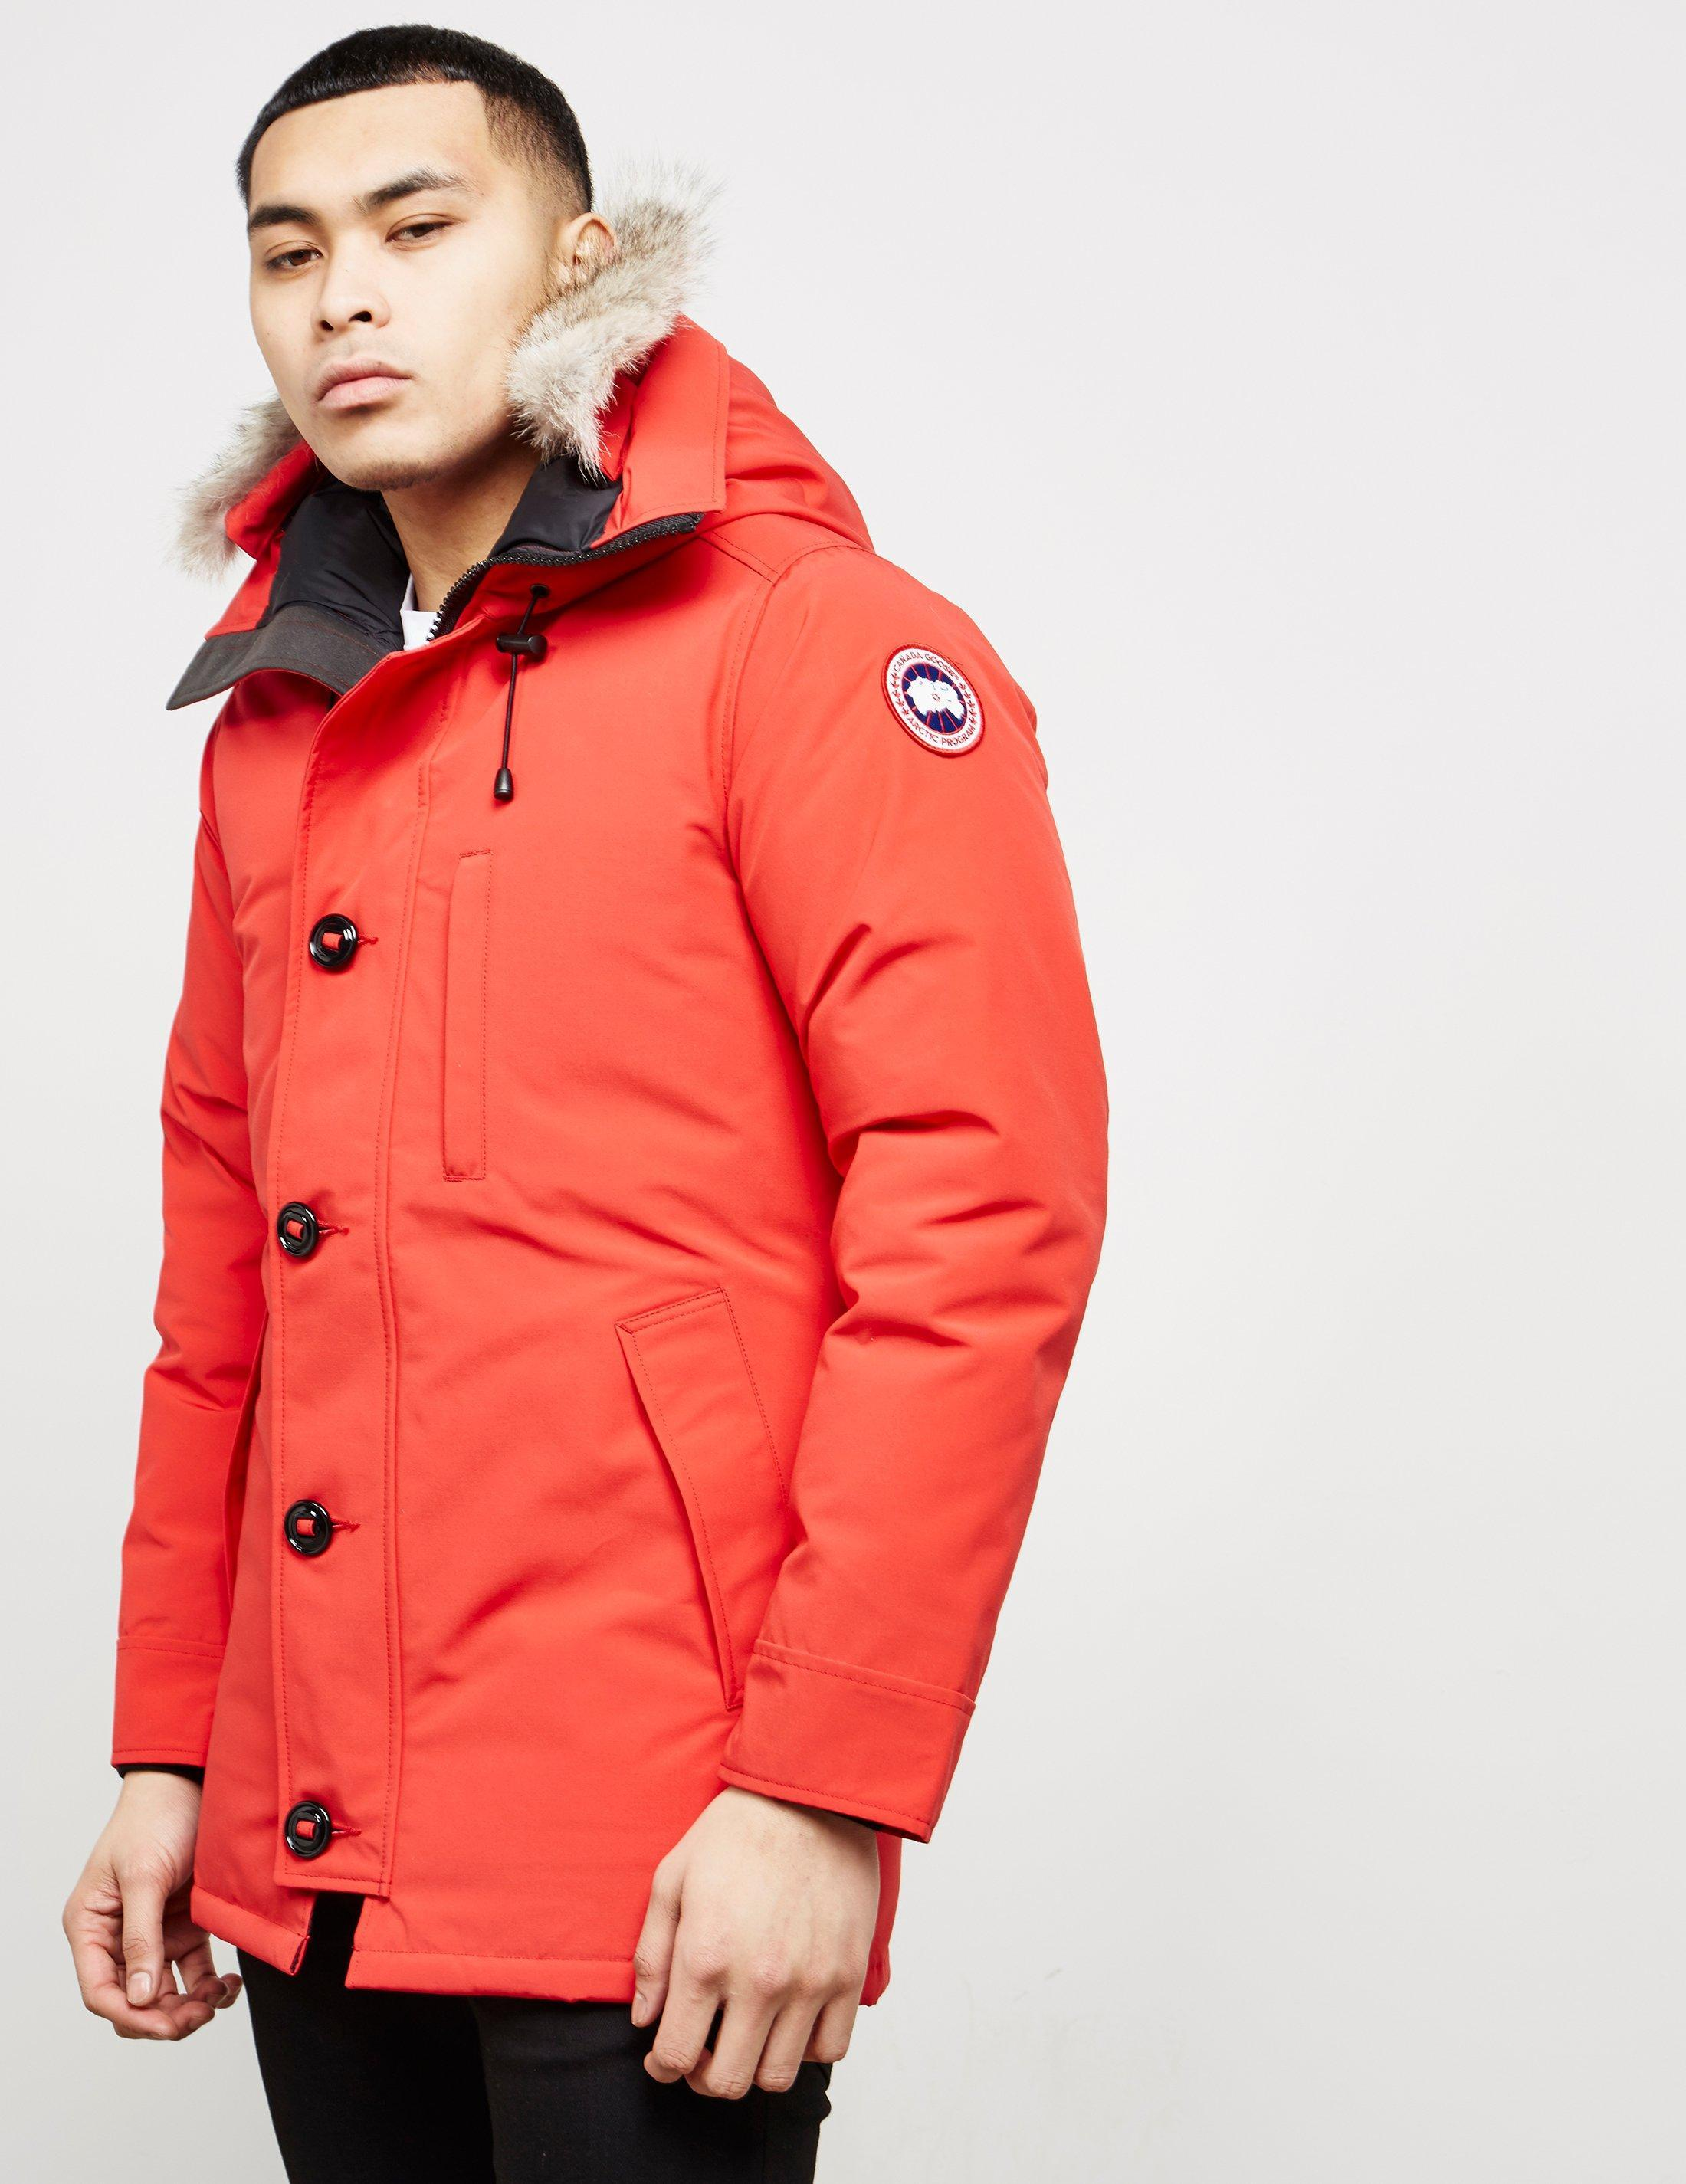 f90509085888 Canada Goose - Chateau Padded Parka Jacket Red for Men - Lyst. View  fullscreen